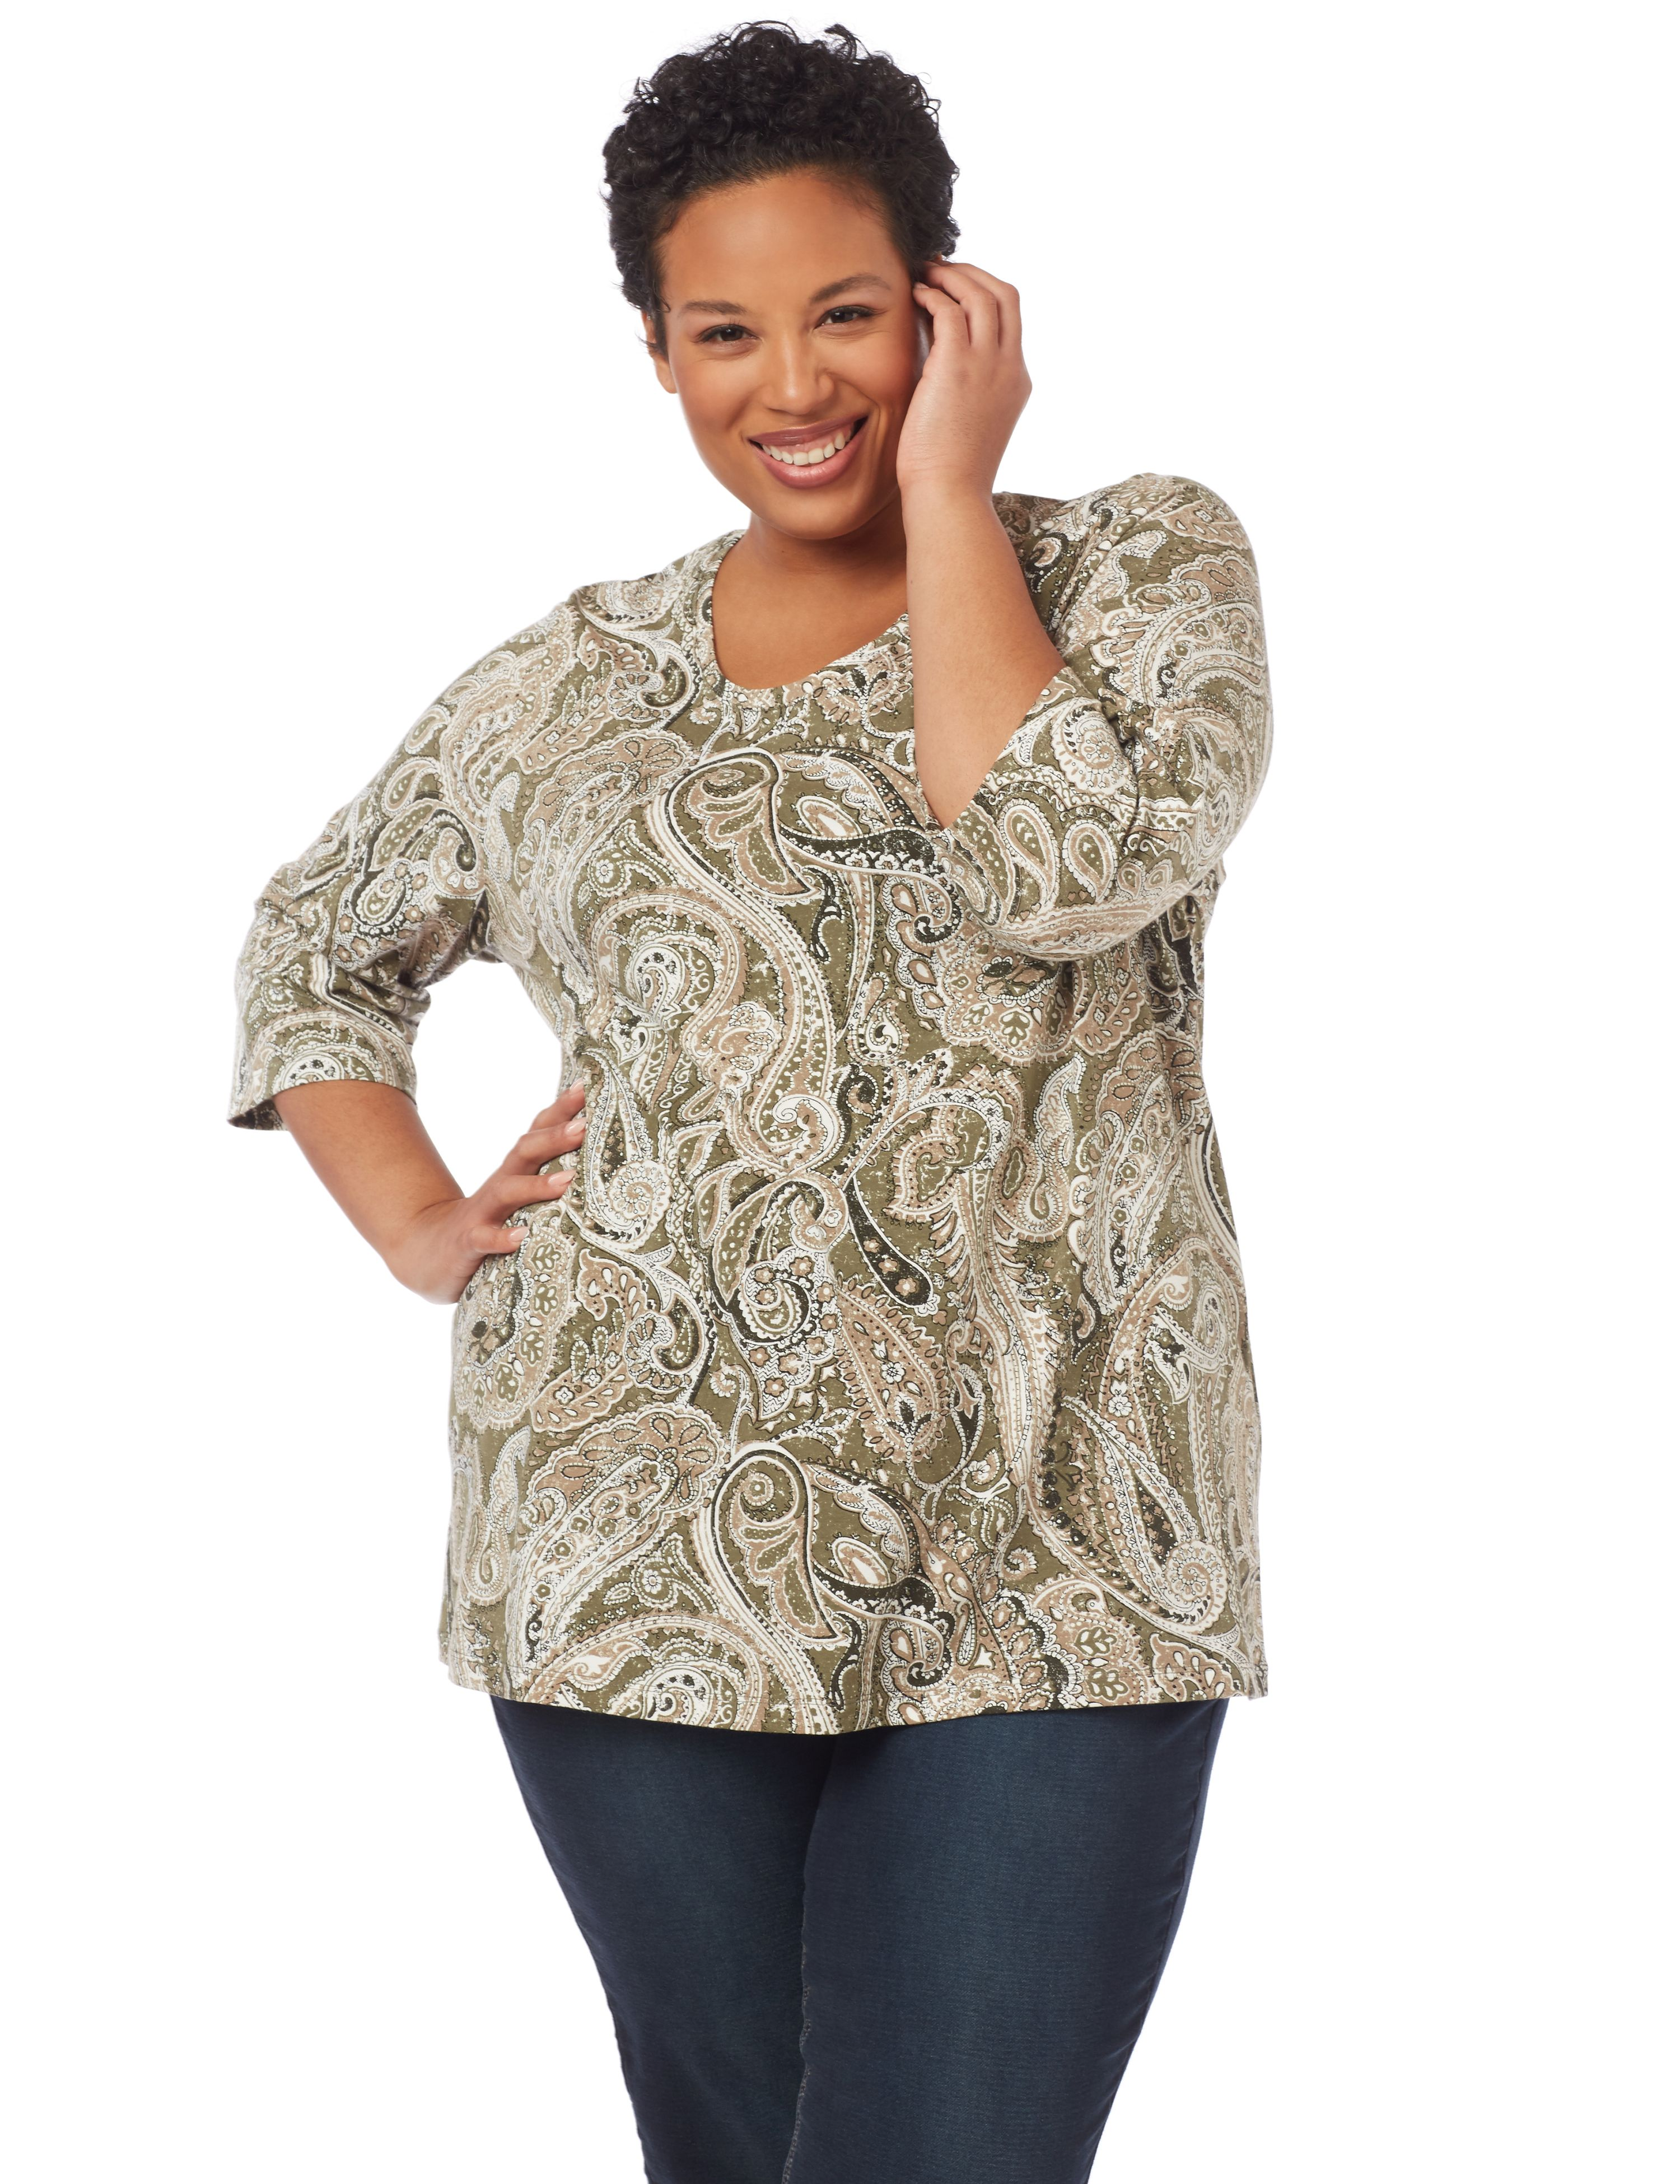 Paisley Dream 3/4-Sleeve Top 1091106 A/O PAISLEY PRINT MP-300094692